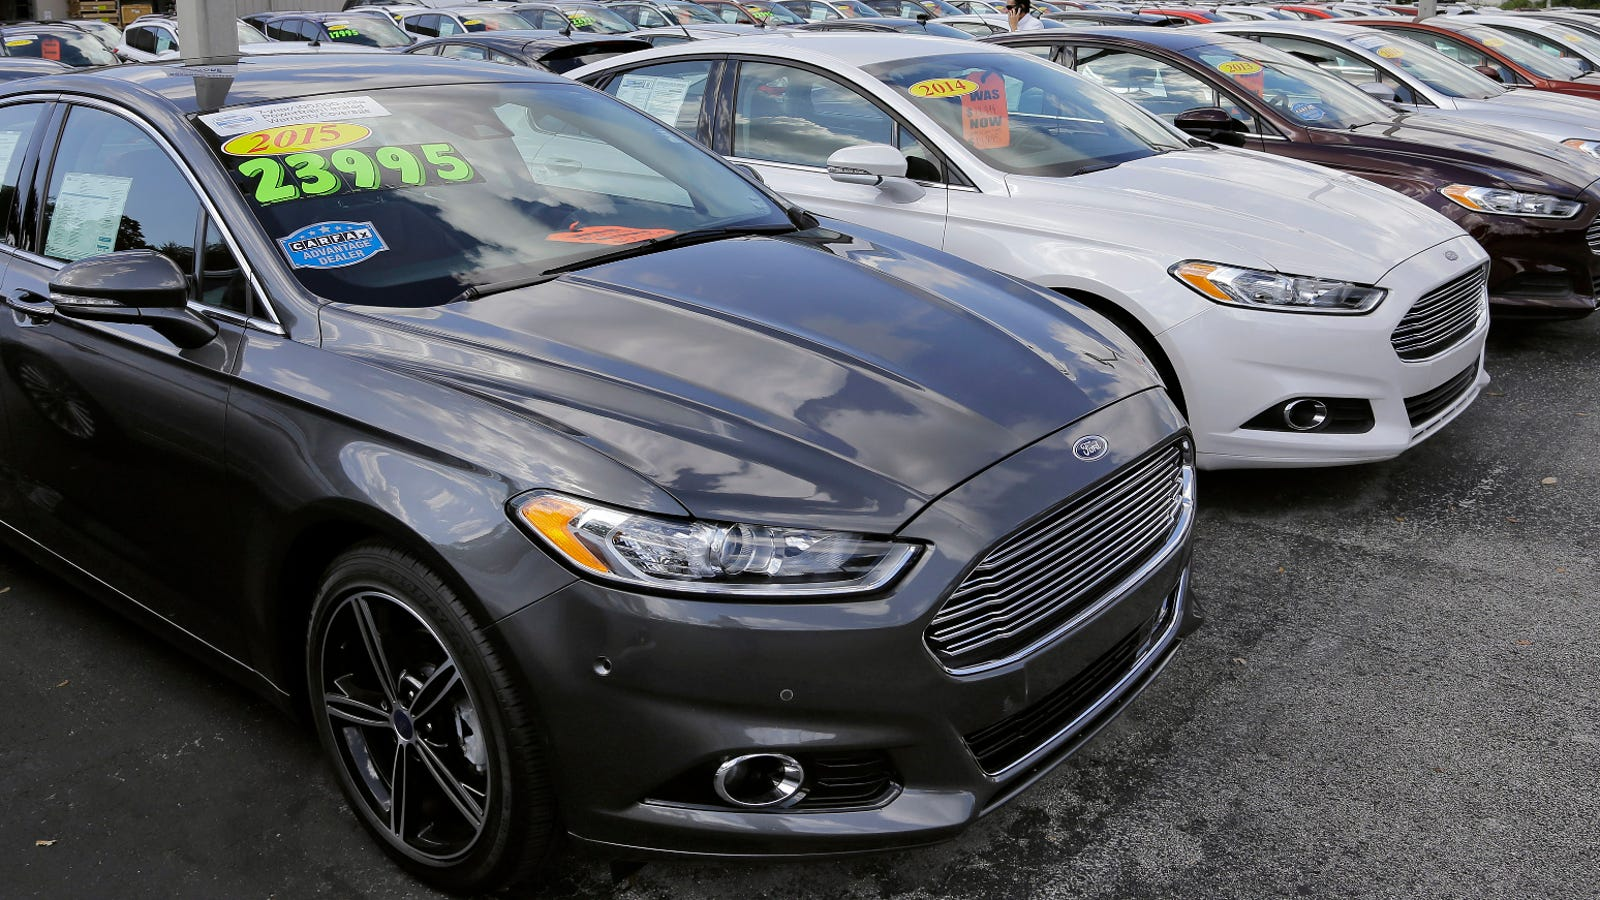 Cheap Used Cars Are Hard To Find Because So Few New Cars